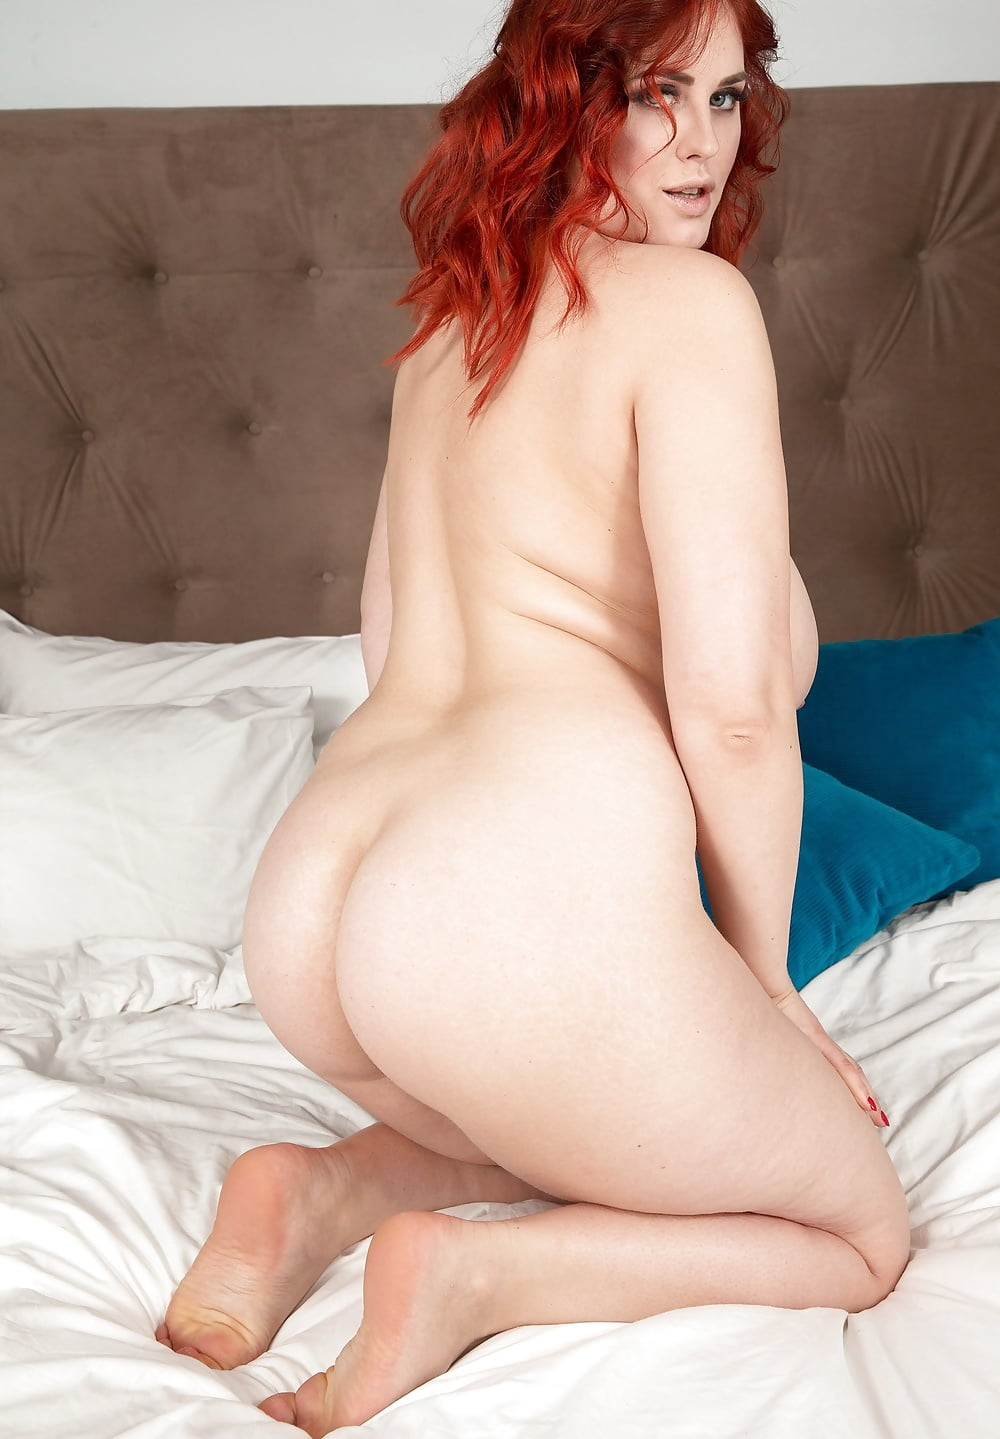 Fat ass red head — img 14